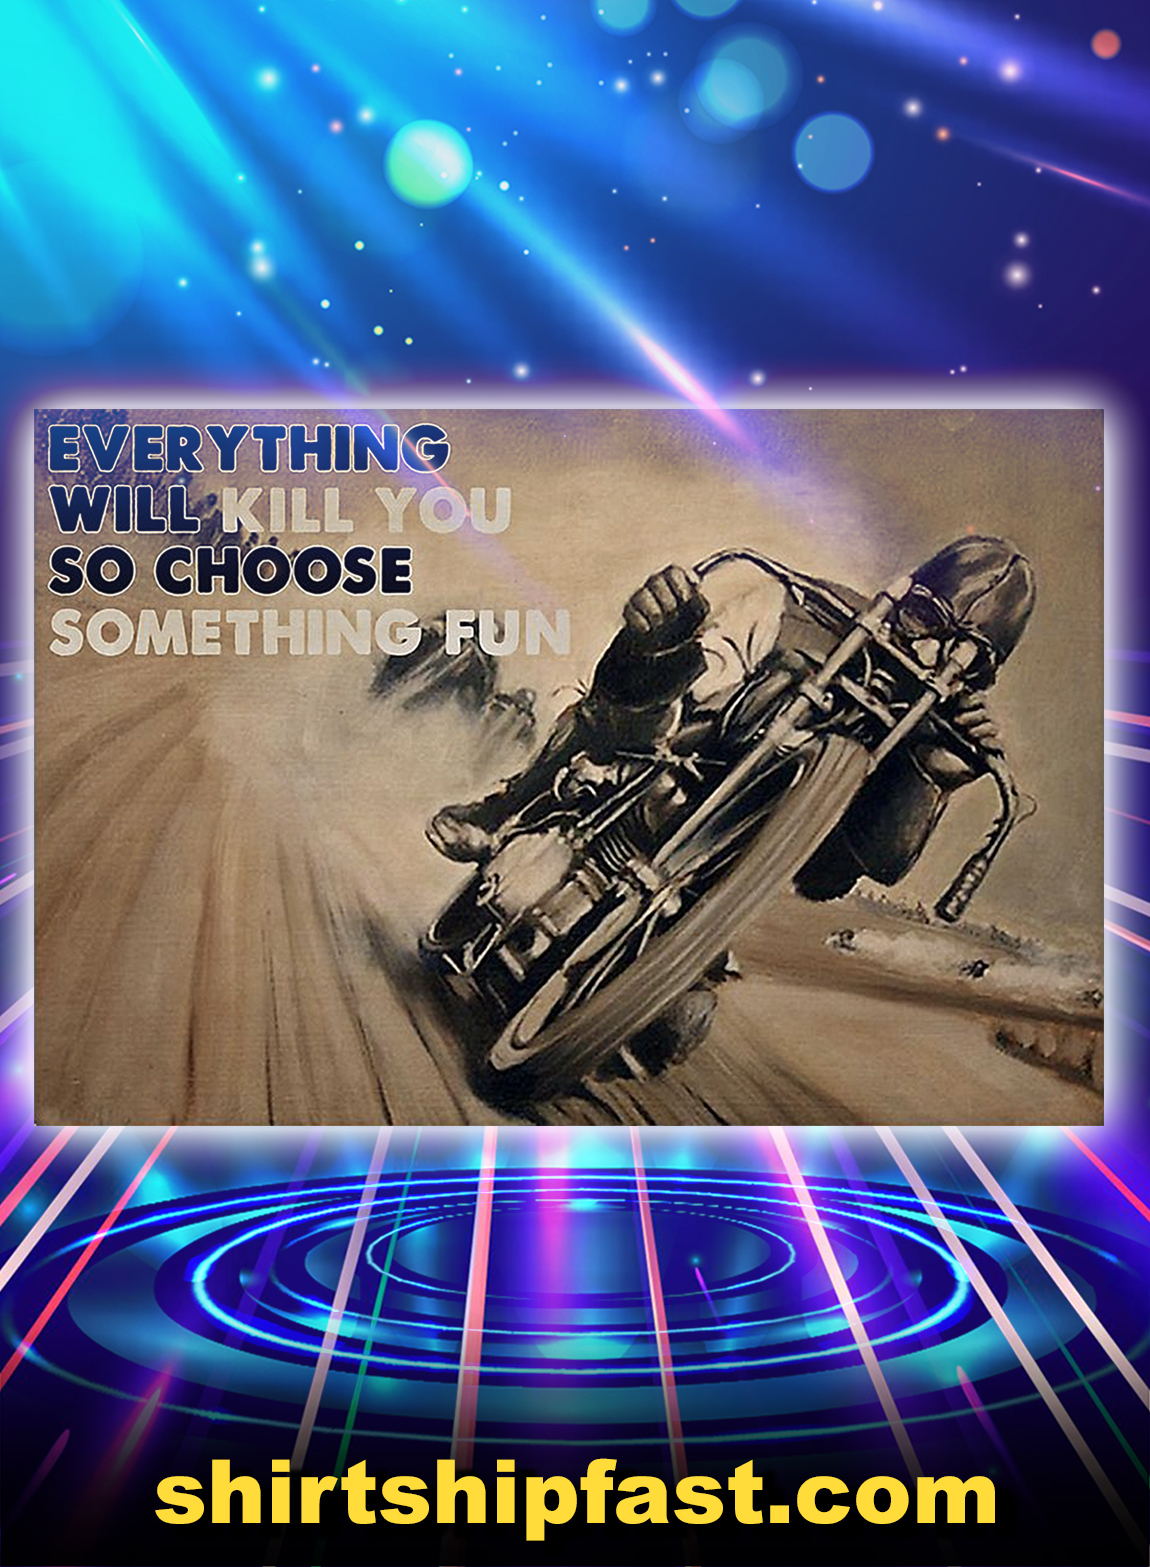 Motorbike racing everything will kill you so choose something fun poster - A2